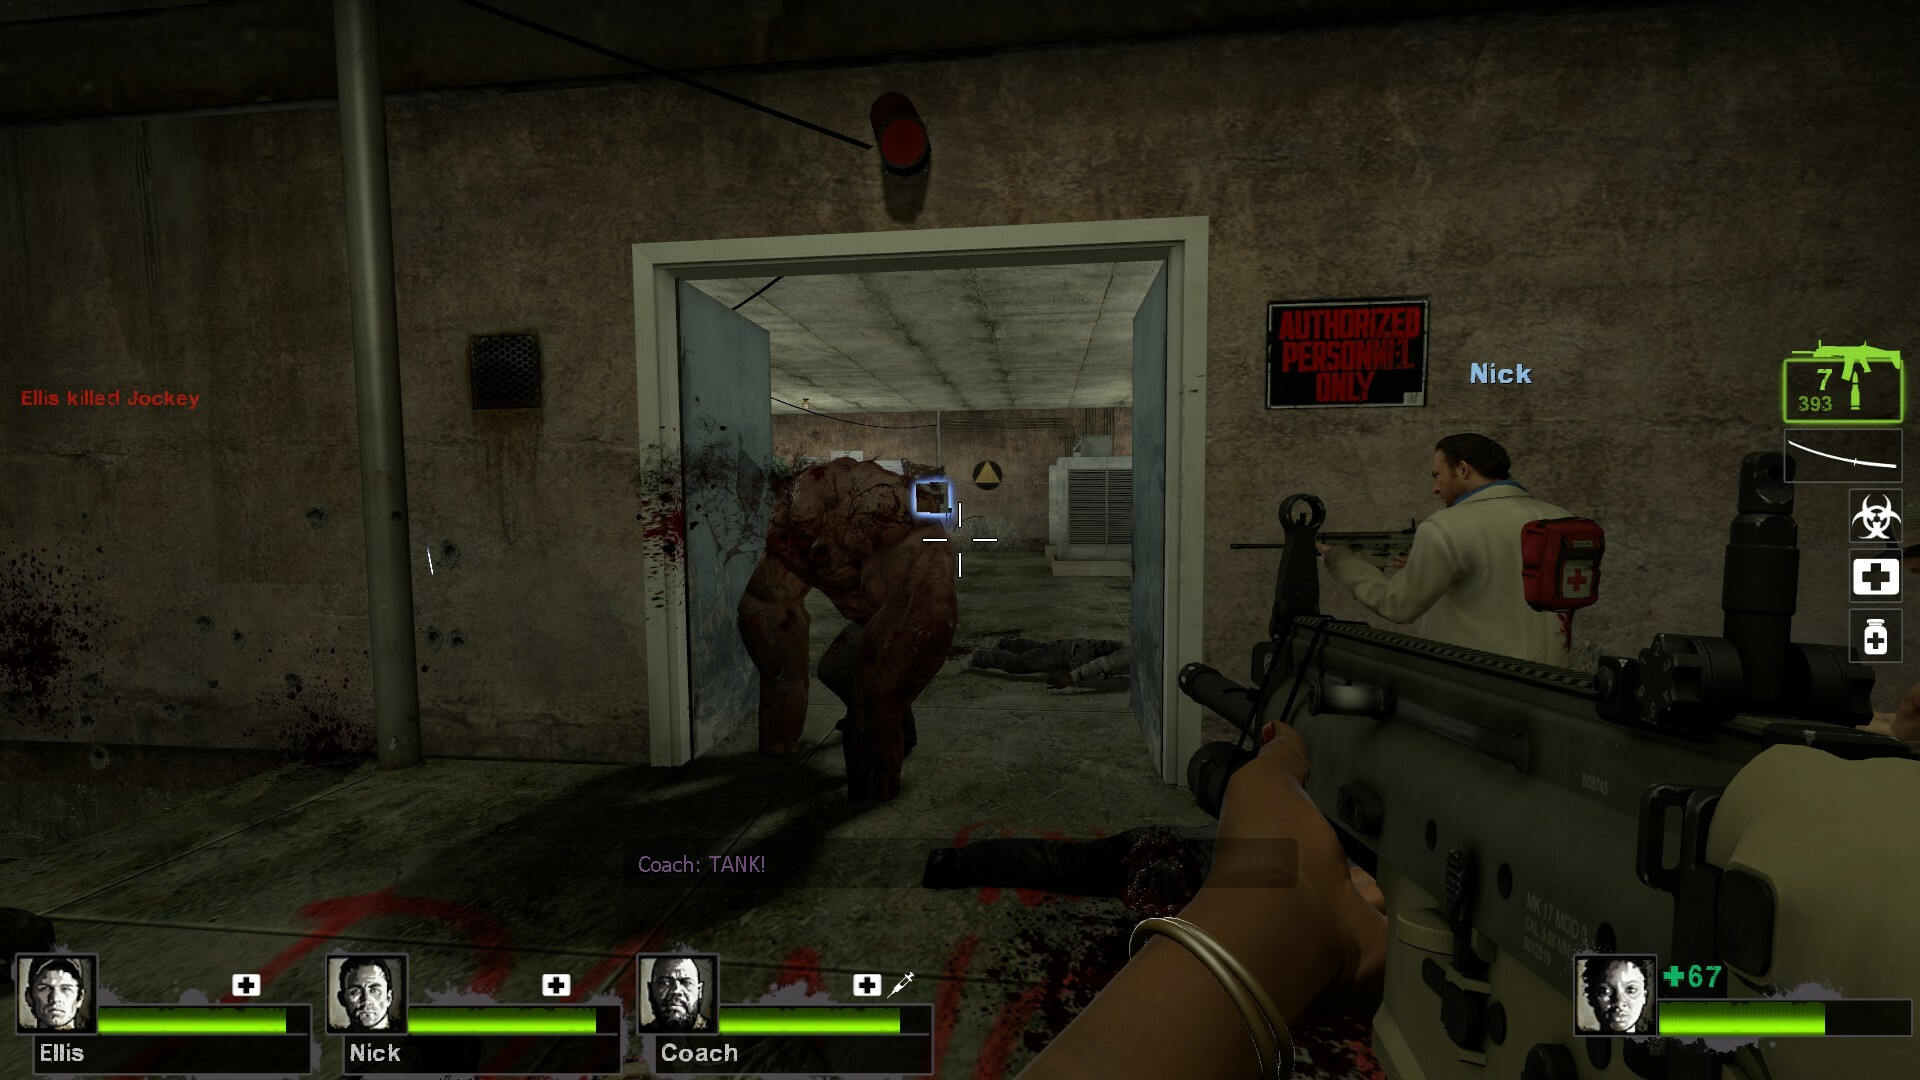 Opening the door will engage in the fight with the Tank. This Tank is scripted to always spawn here.